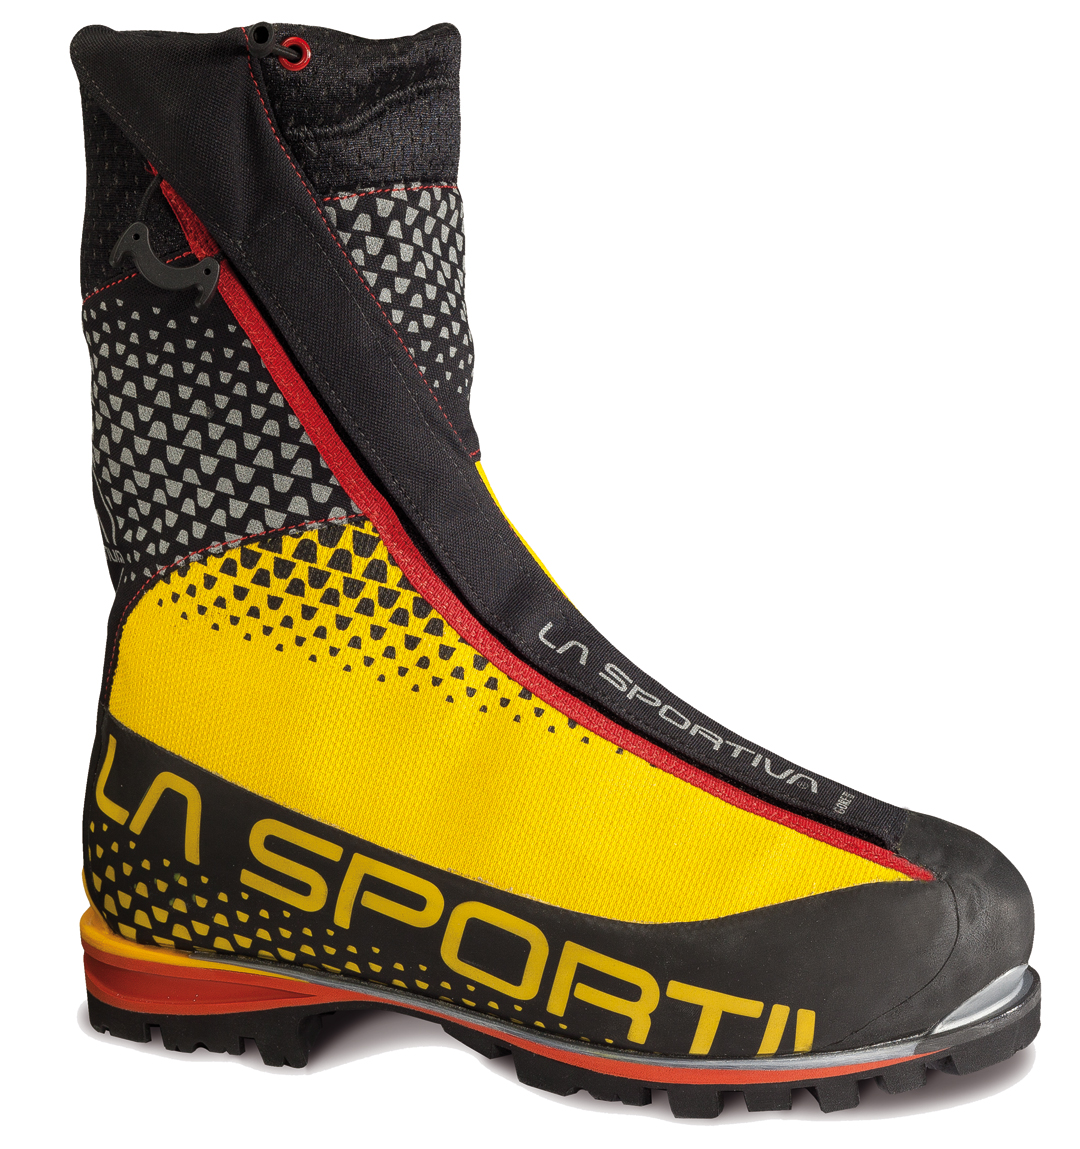 La Sportiva&#39;s new Batura 2.0 GTX mountain boot.